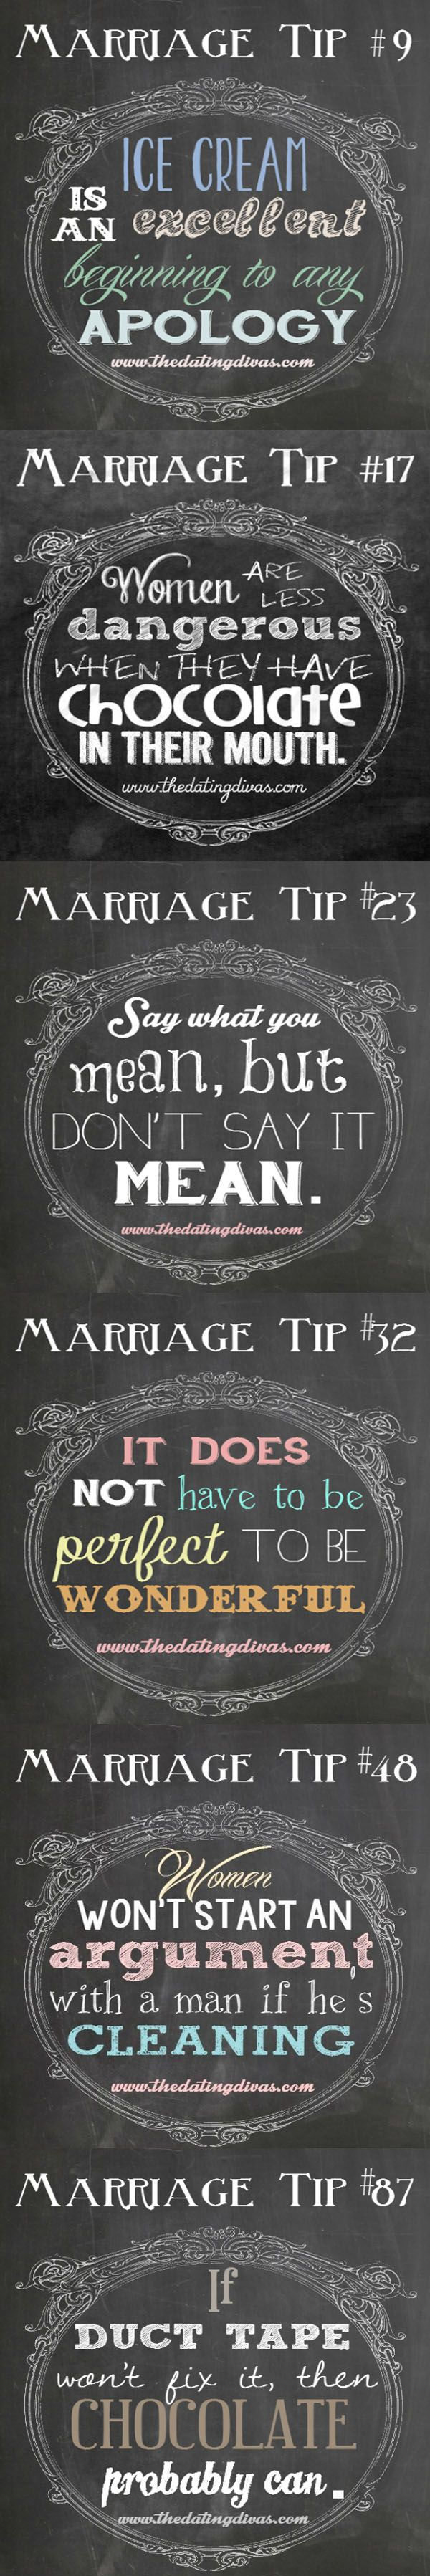 Marriage Tips From Dating Divas Marriage Tips Love And Marriage Wedding Humor